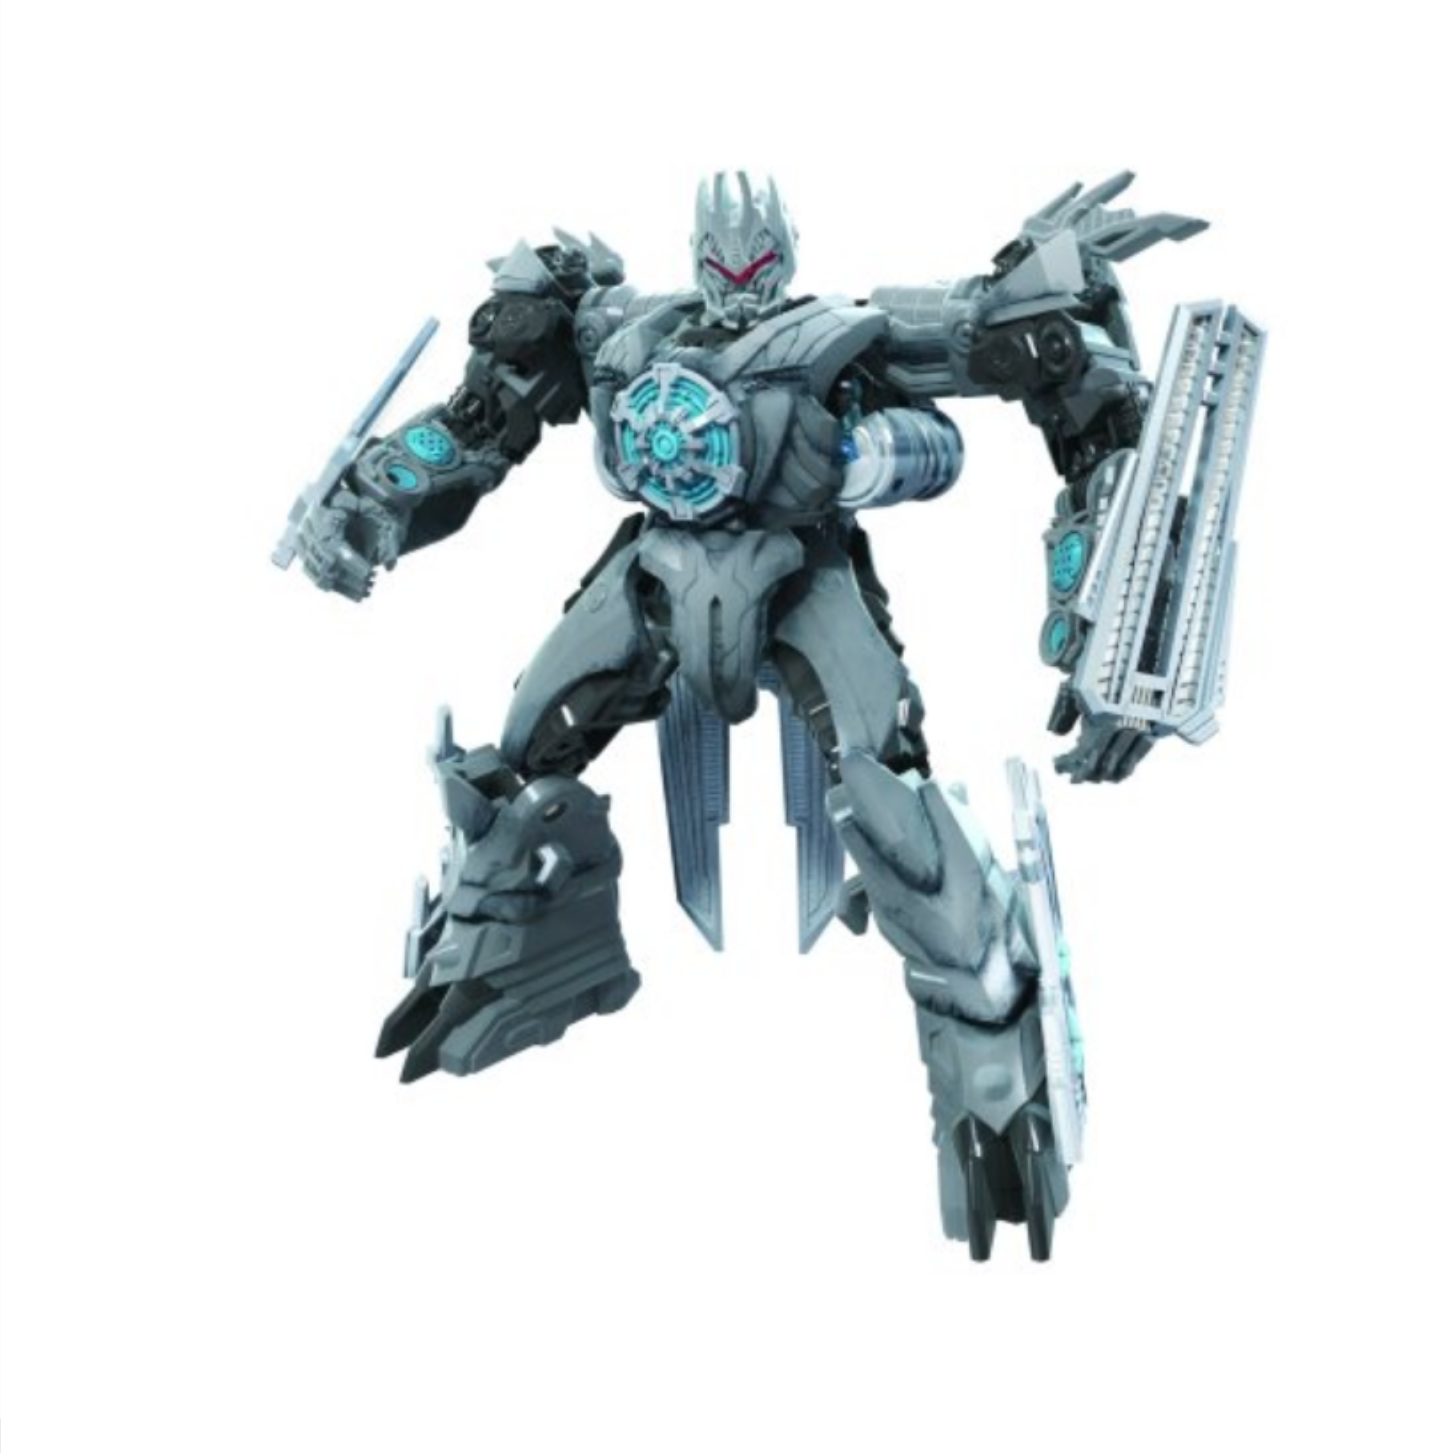 Transformers News: Transformers Studio Series Sentinel Prime, Revenge of the Fallen Soundwave Revealed in Walmart App